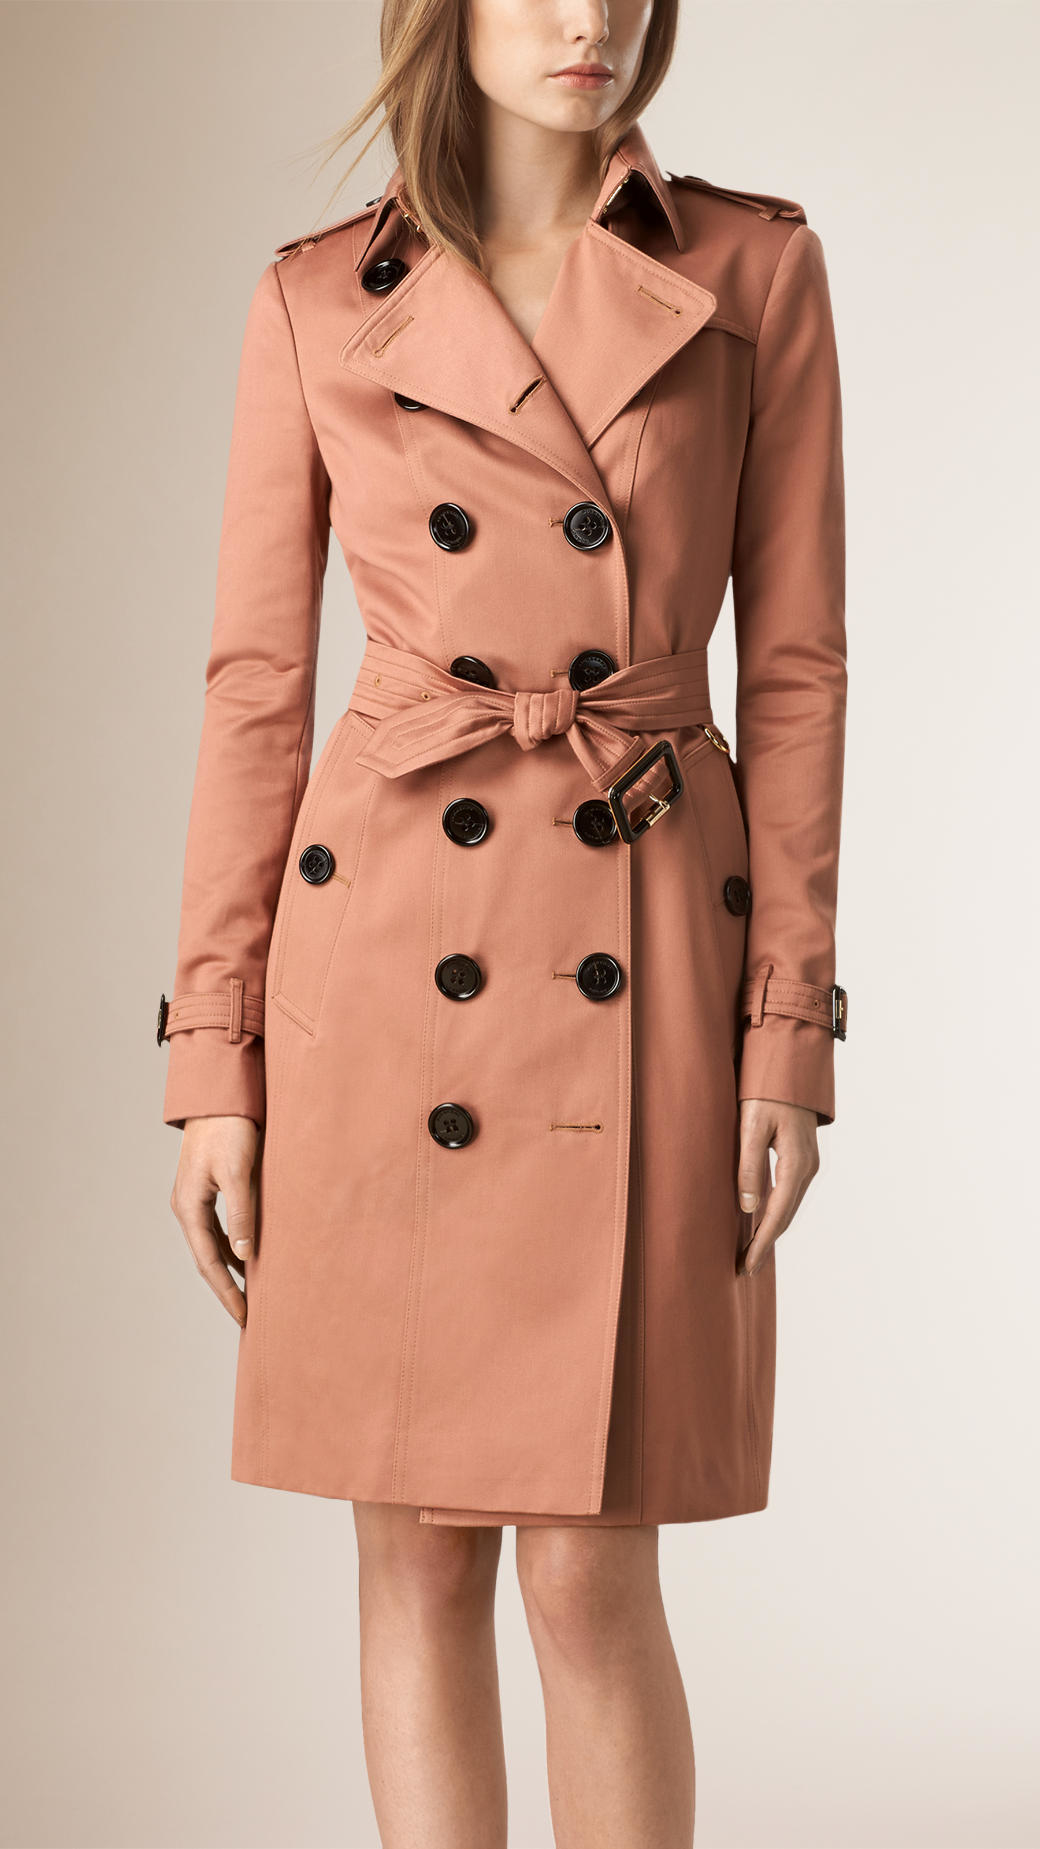 burberry cotton sateen trench coat in pink antique garnet. Black Bedroom Furniture Sets. Home Design Ideas